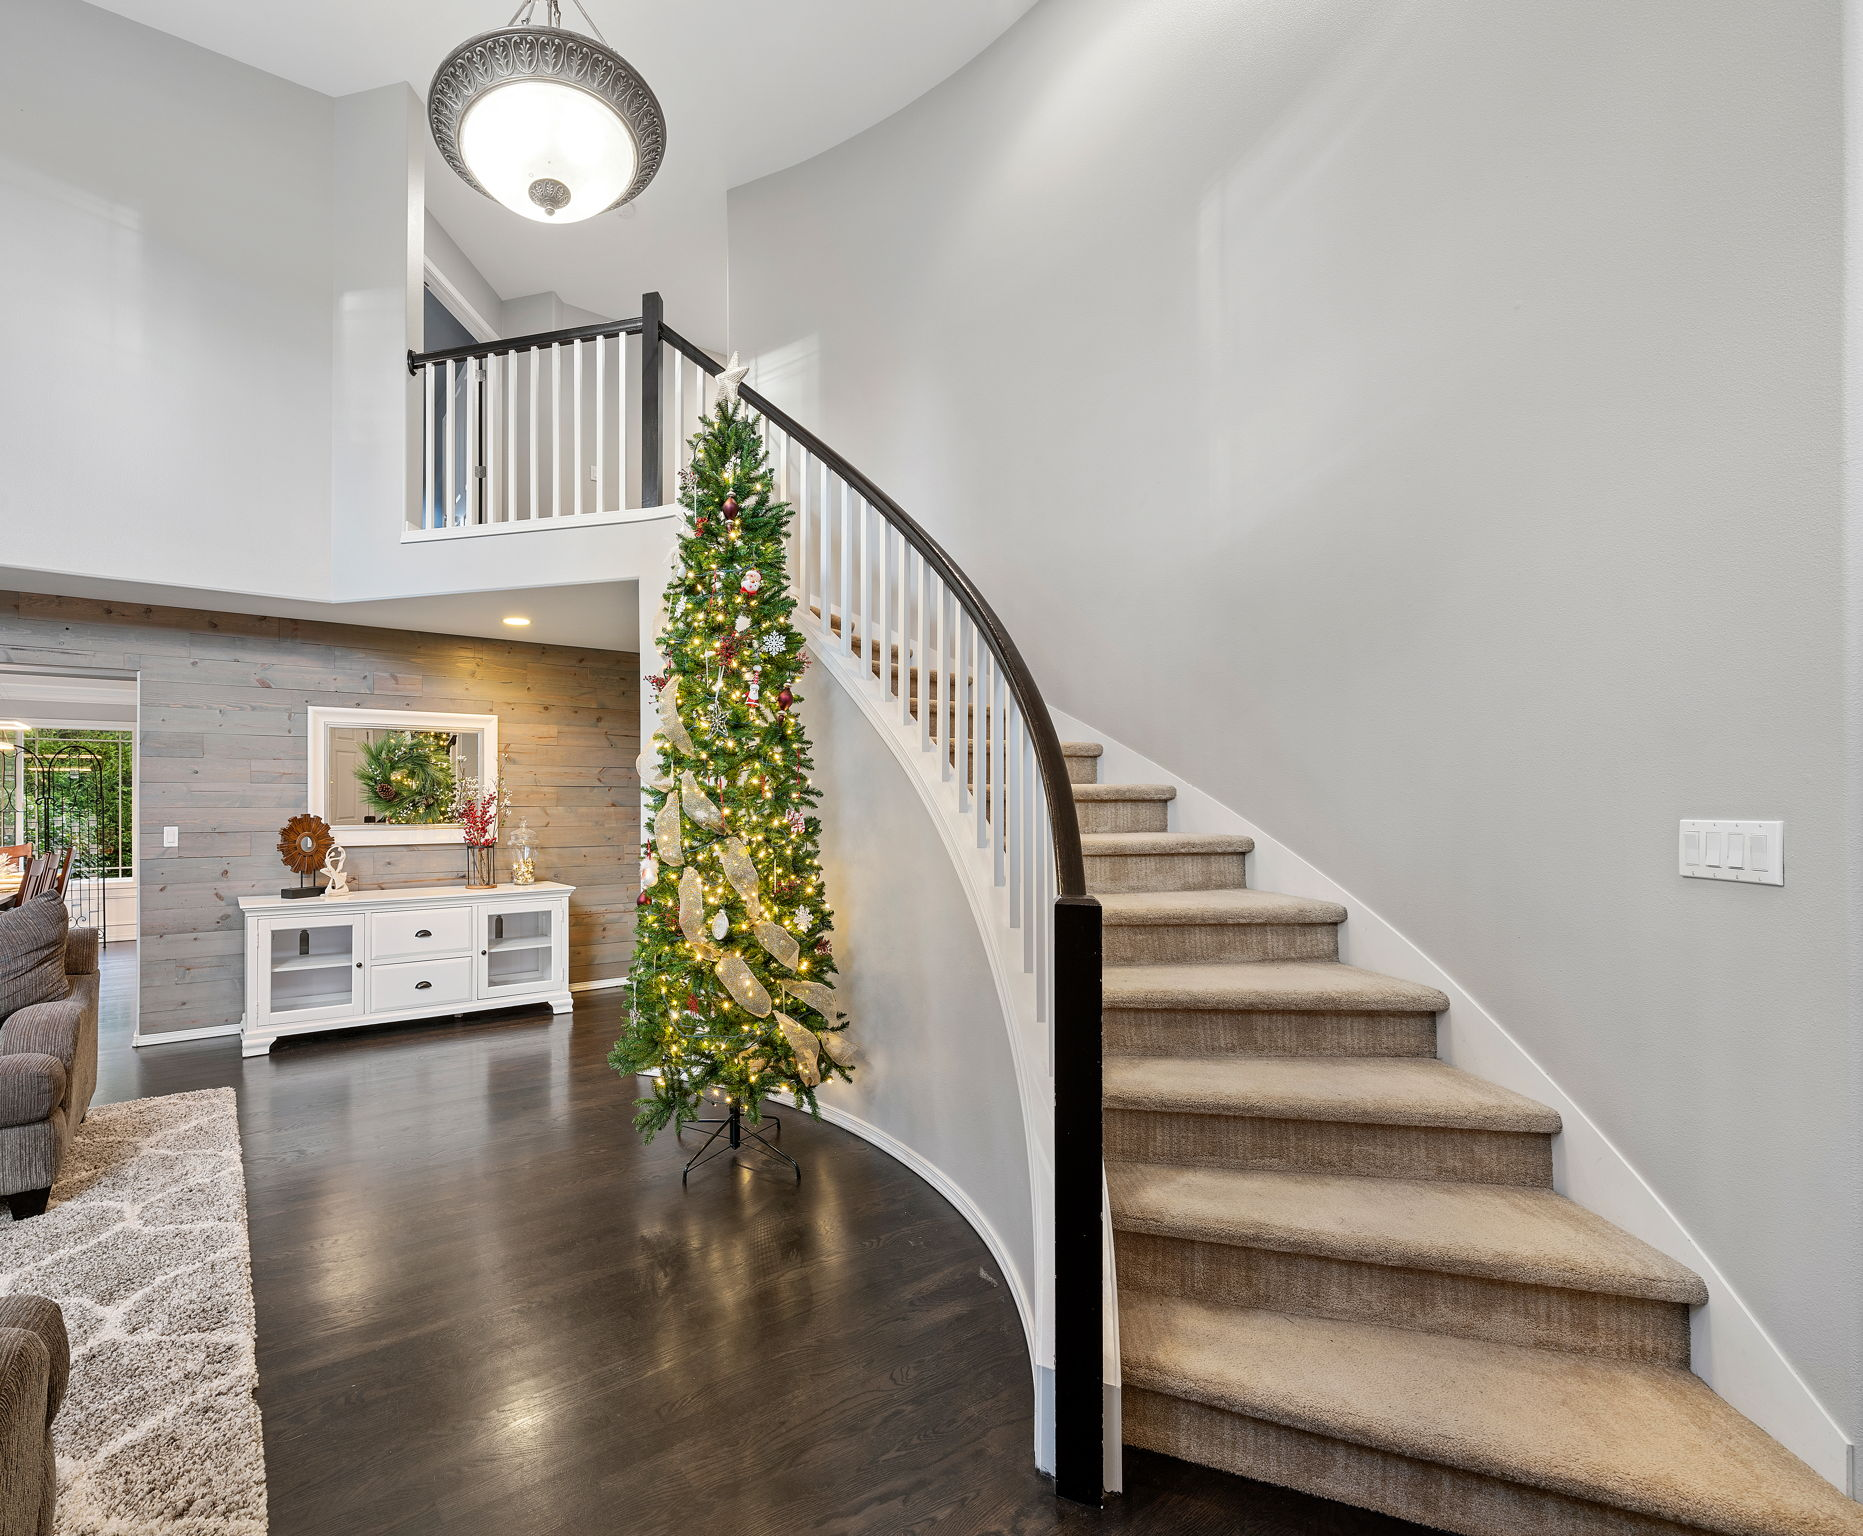 Grand sweeping staircase